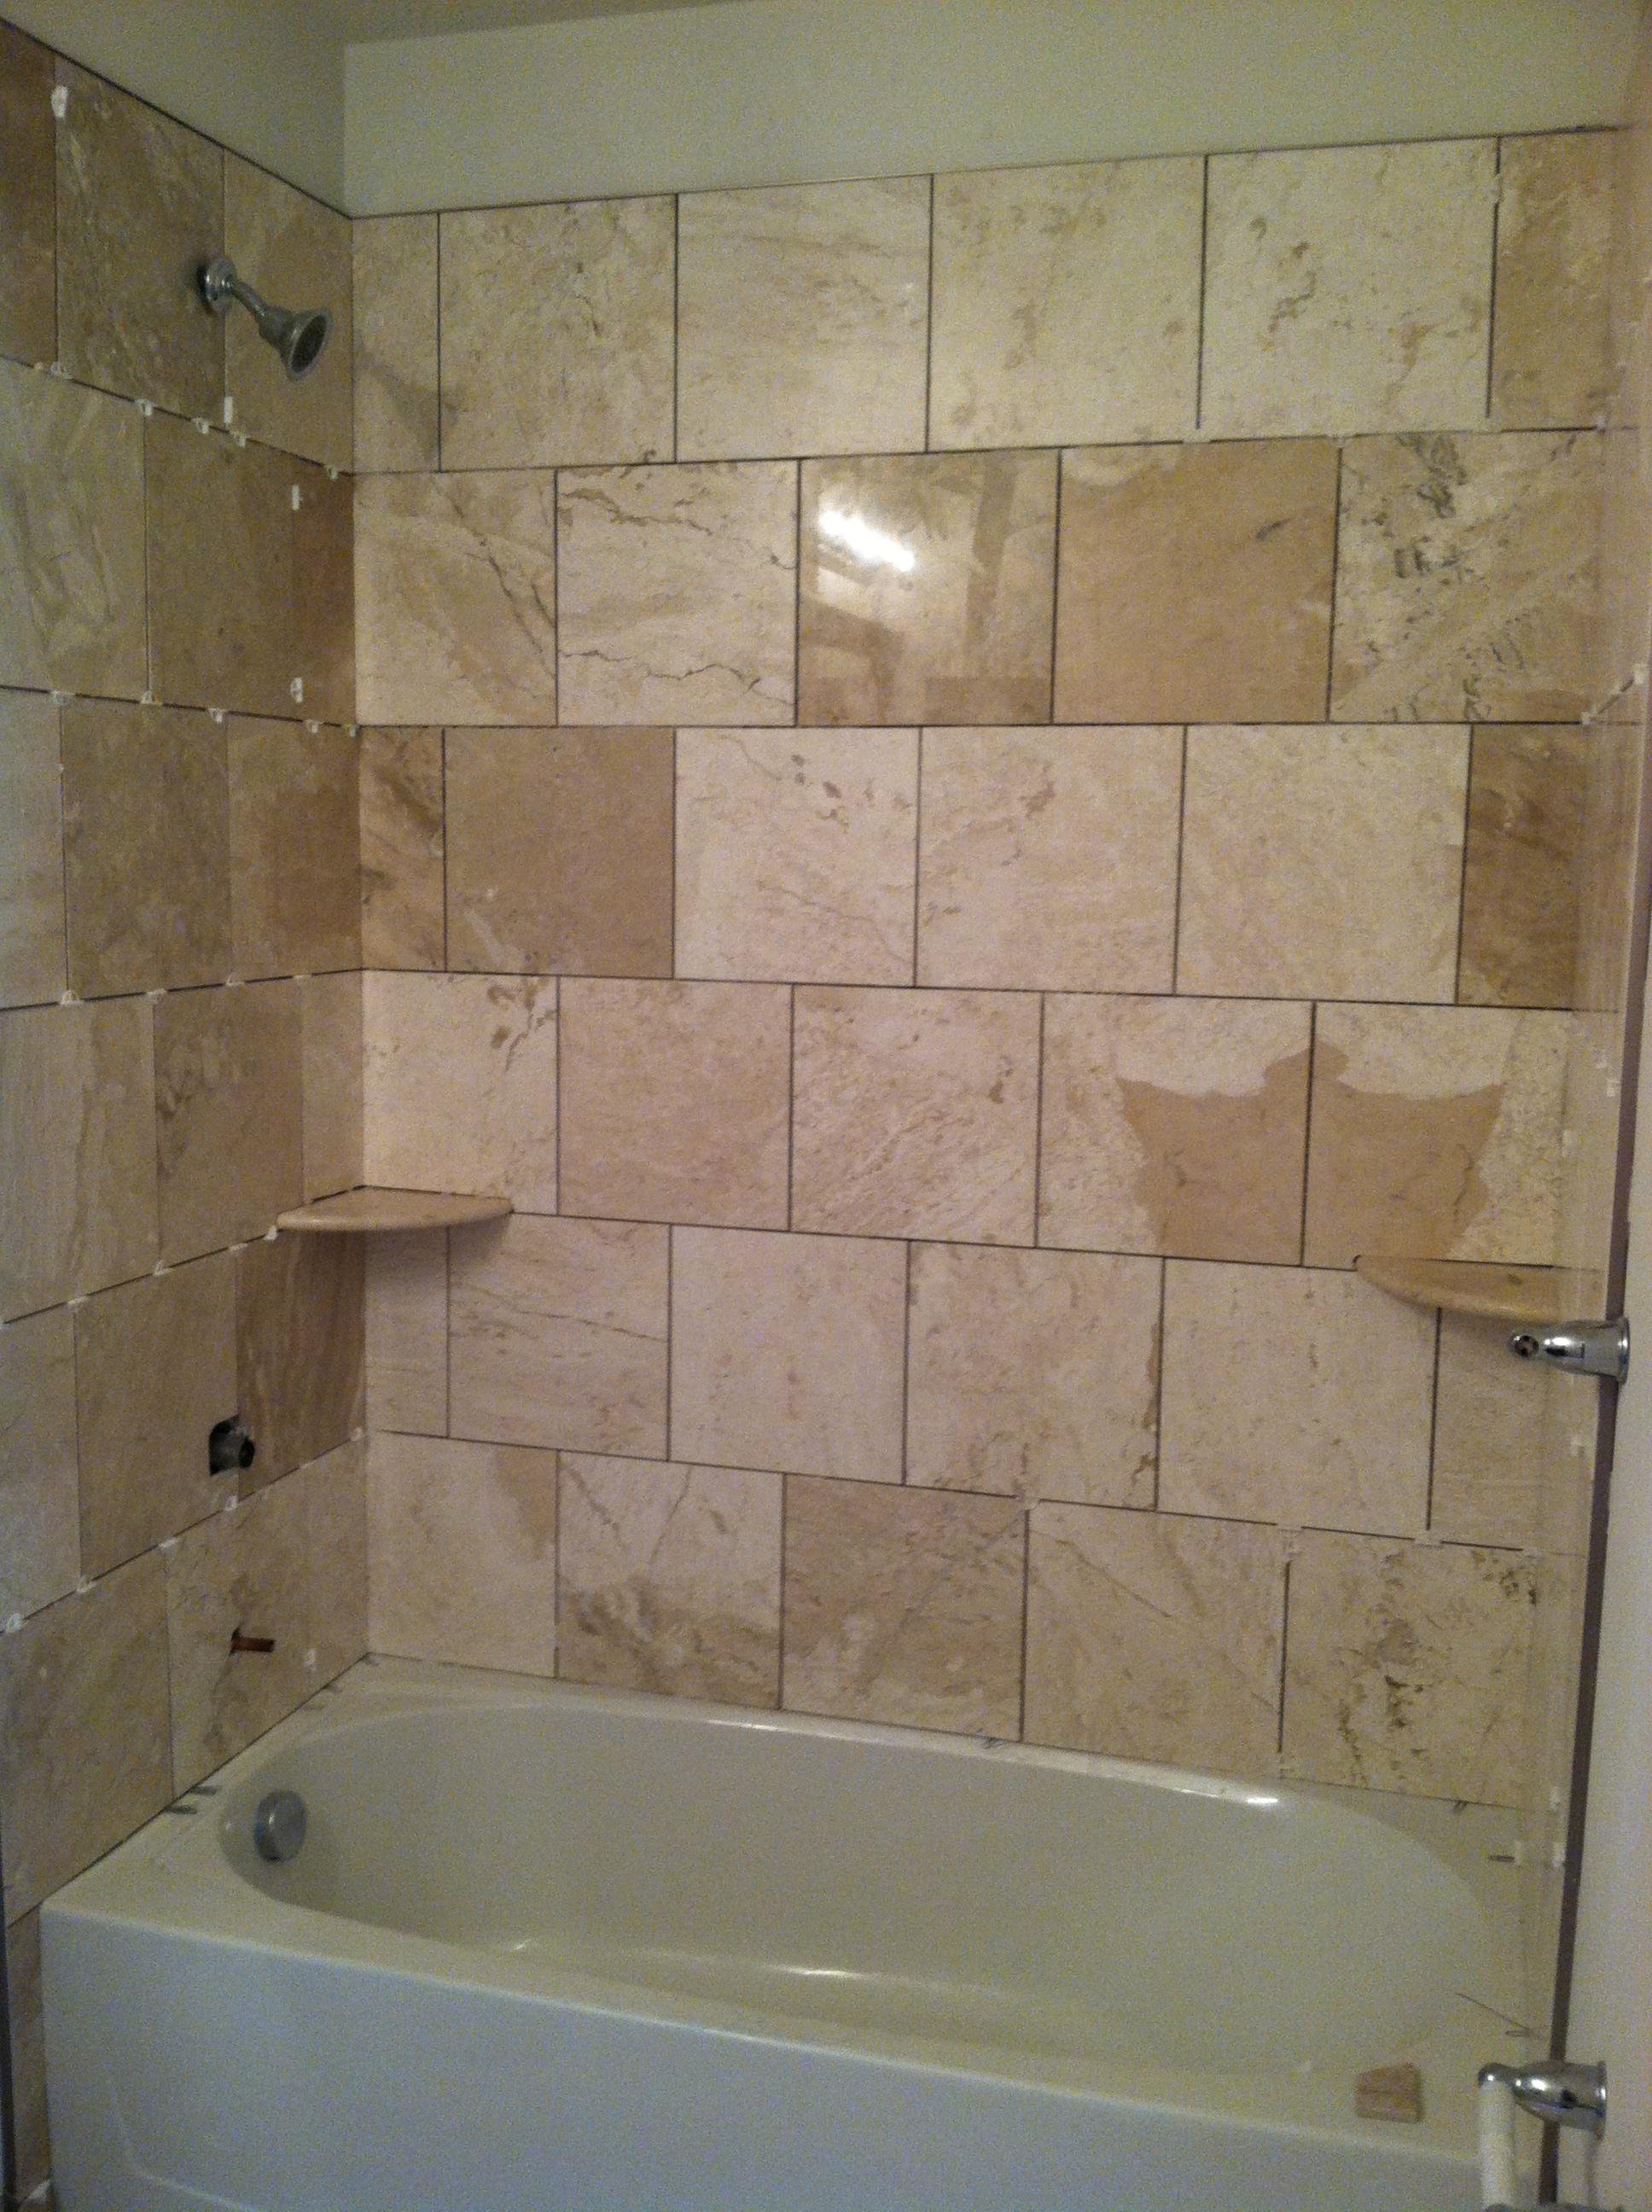 Bathroom Remodel Tile Shower tile bathroom remodel shower design ideas : ewdinteriors